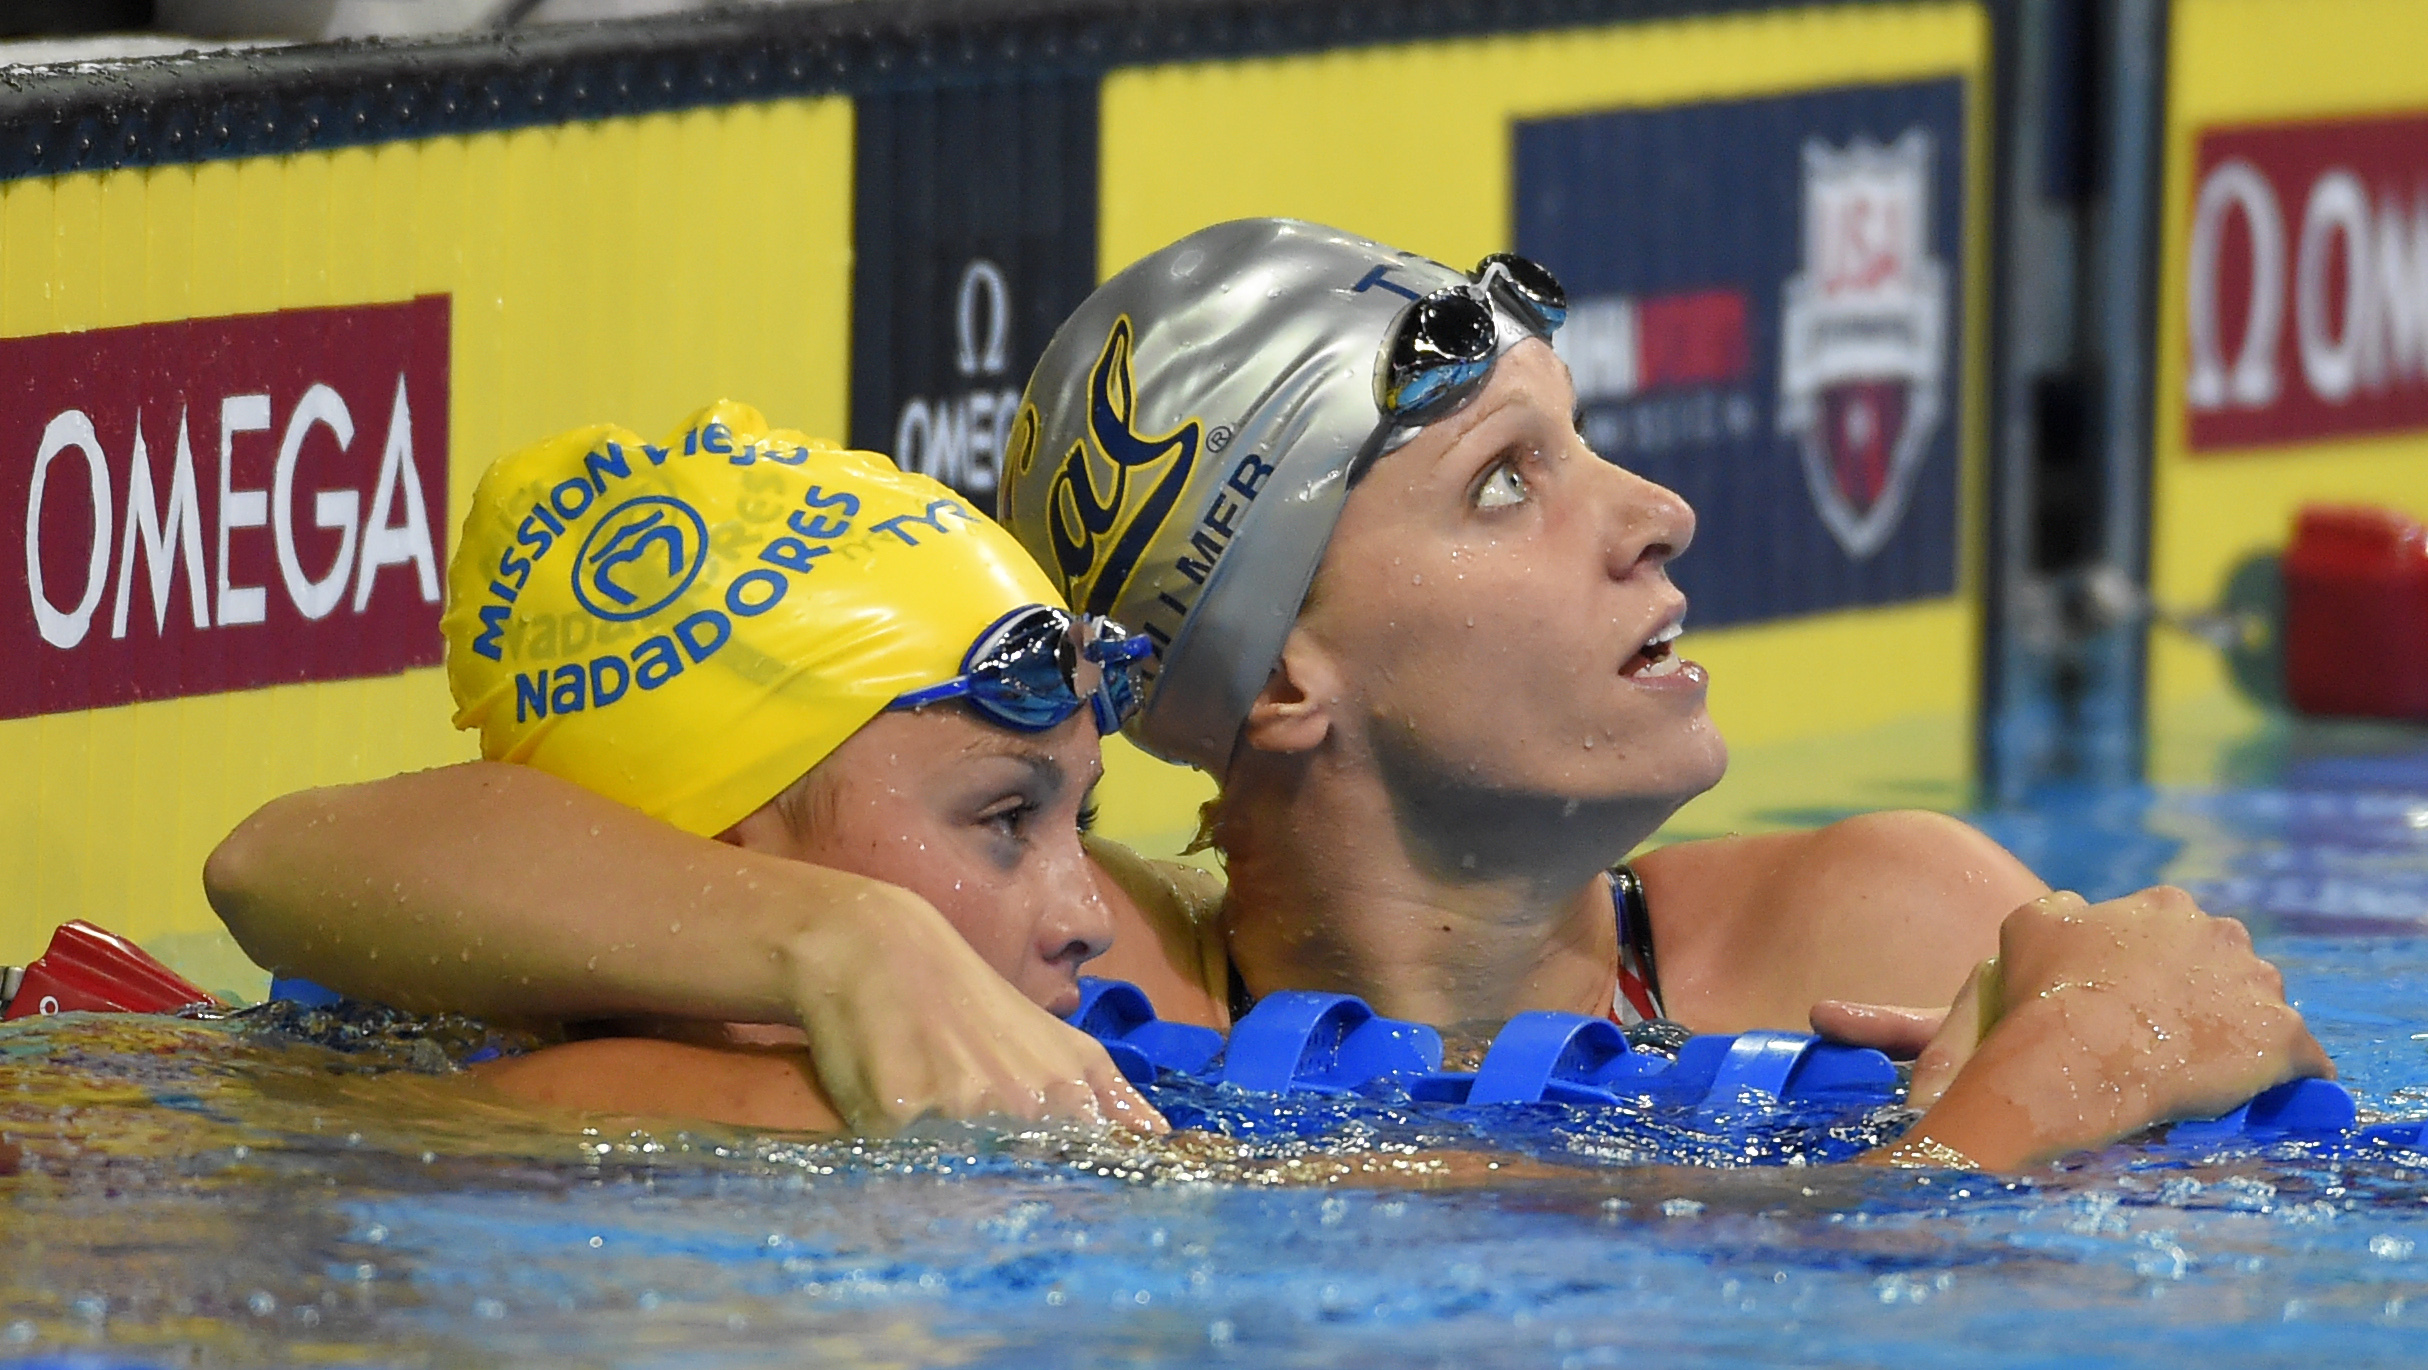 Dana Vollmer hugs Katie McLaughlin, left, as she checks her time after a women's 100-meter butterfly semifinal at the U.S. Olympic swimming trials, Sunday, June 26, 2016, in Omaha, Neb. (AP Photo/Mark J. Terrill)